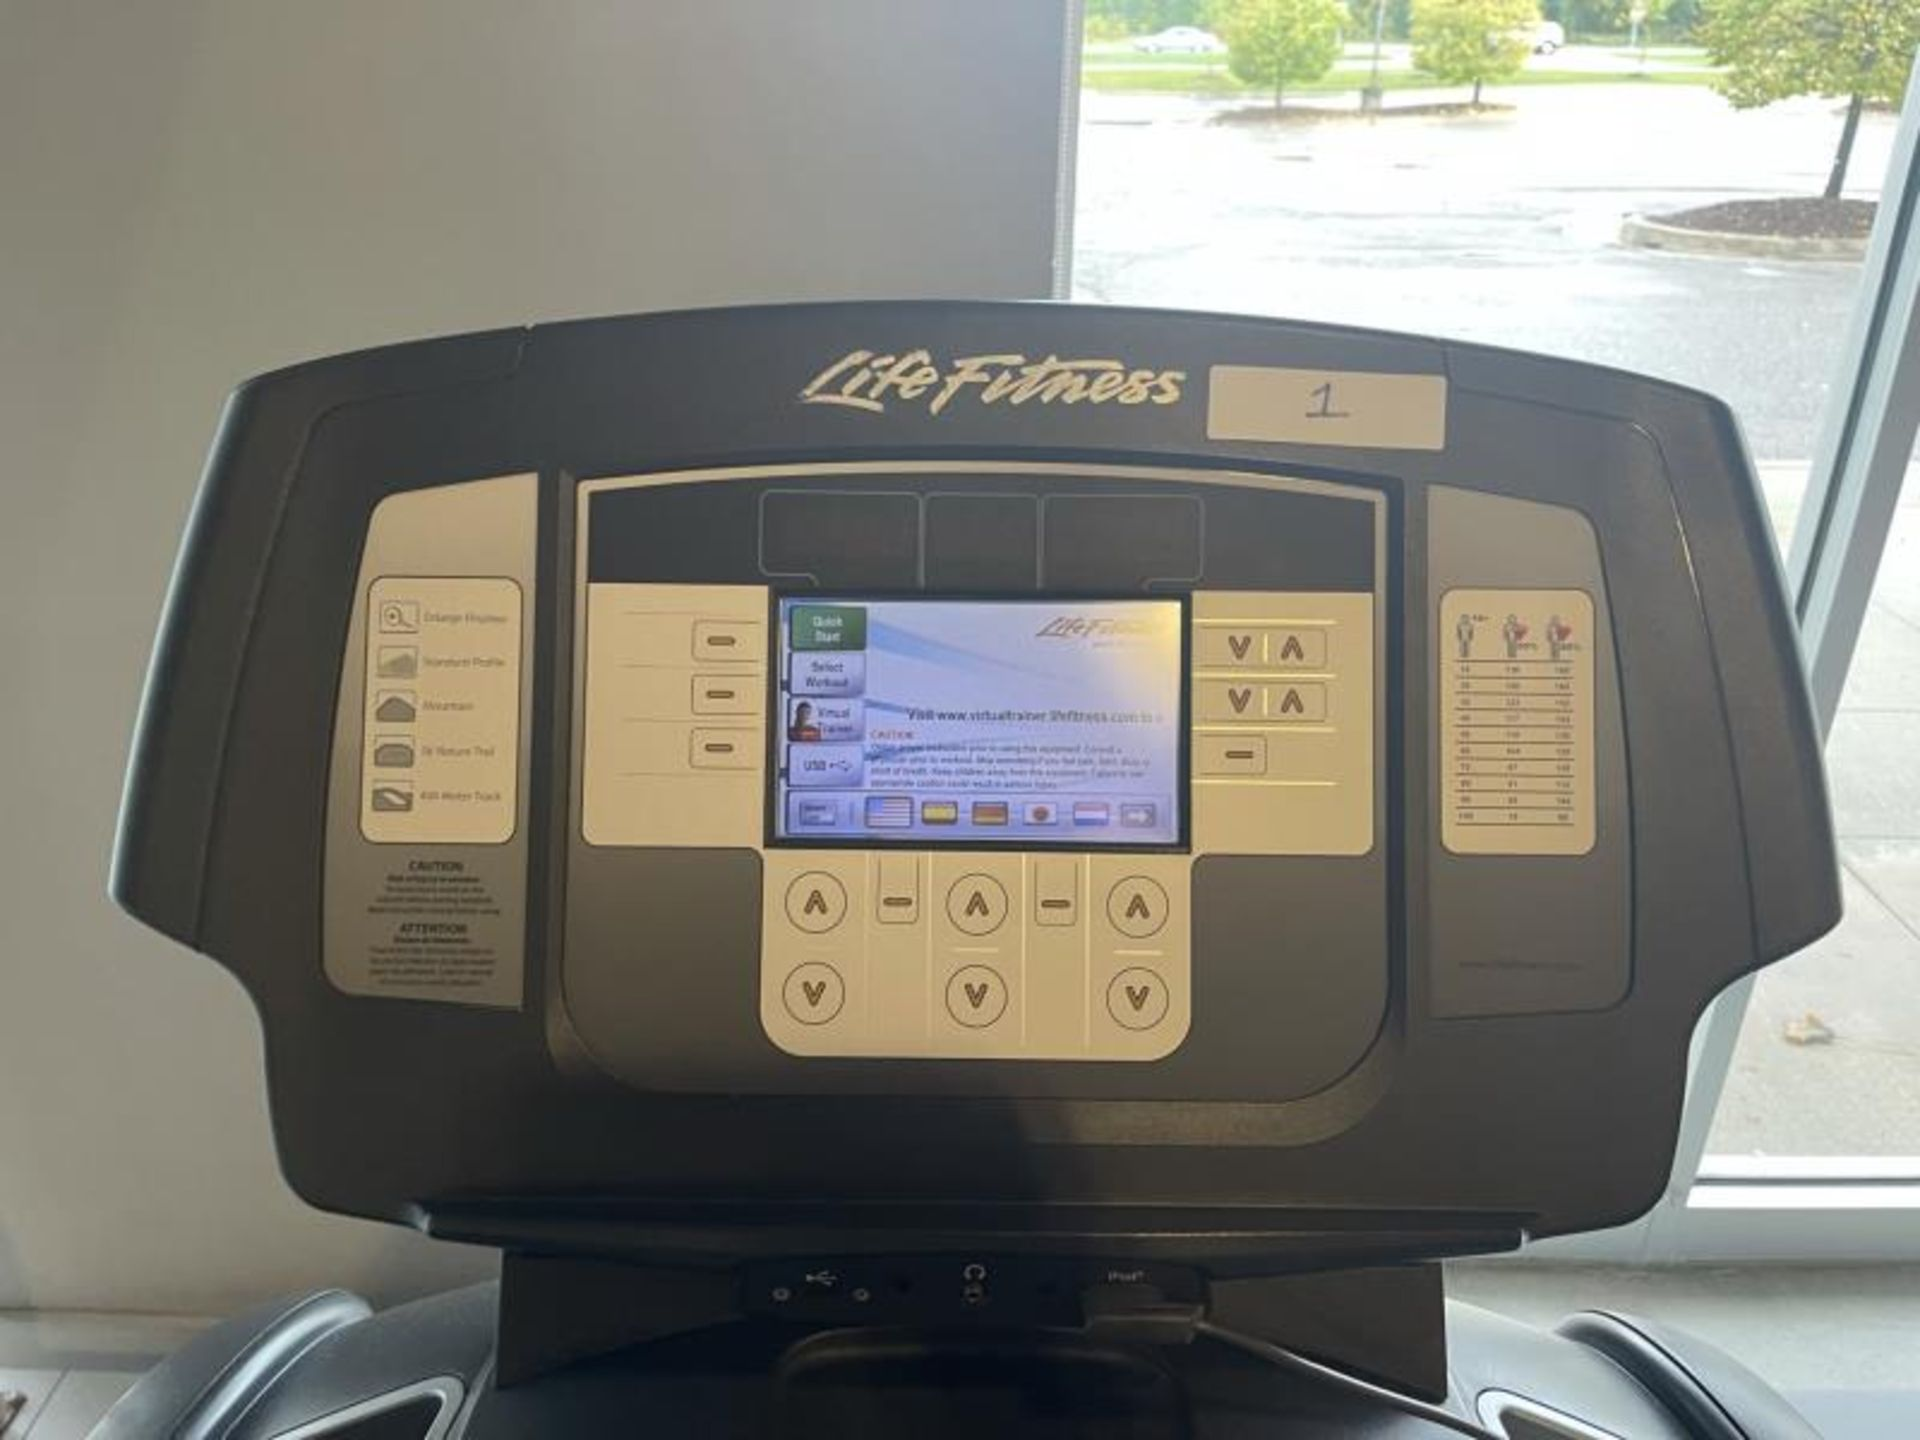 Life Fitness Treadmill M: 95T with Flex Deck, Shock Absorption System SN: TET107106 - Image 2 of 3